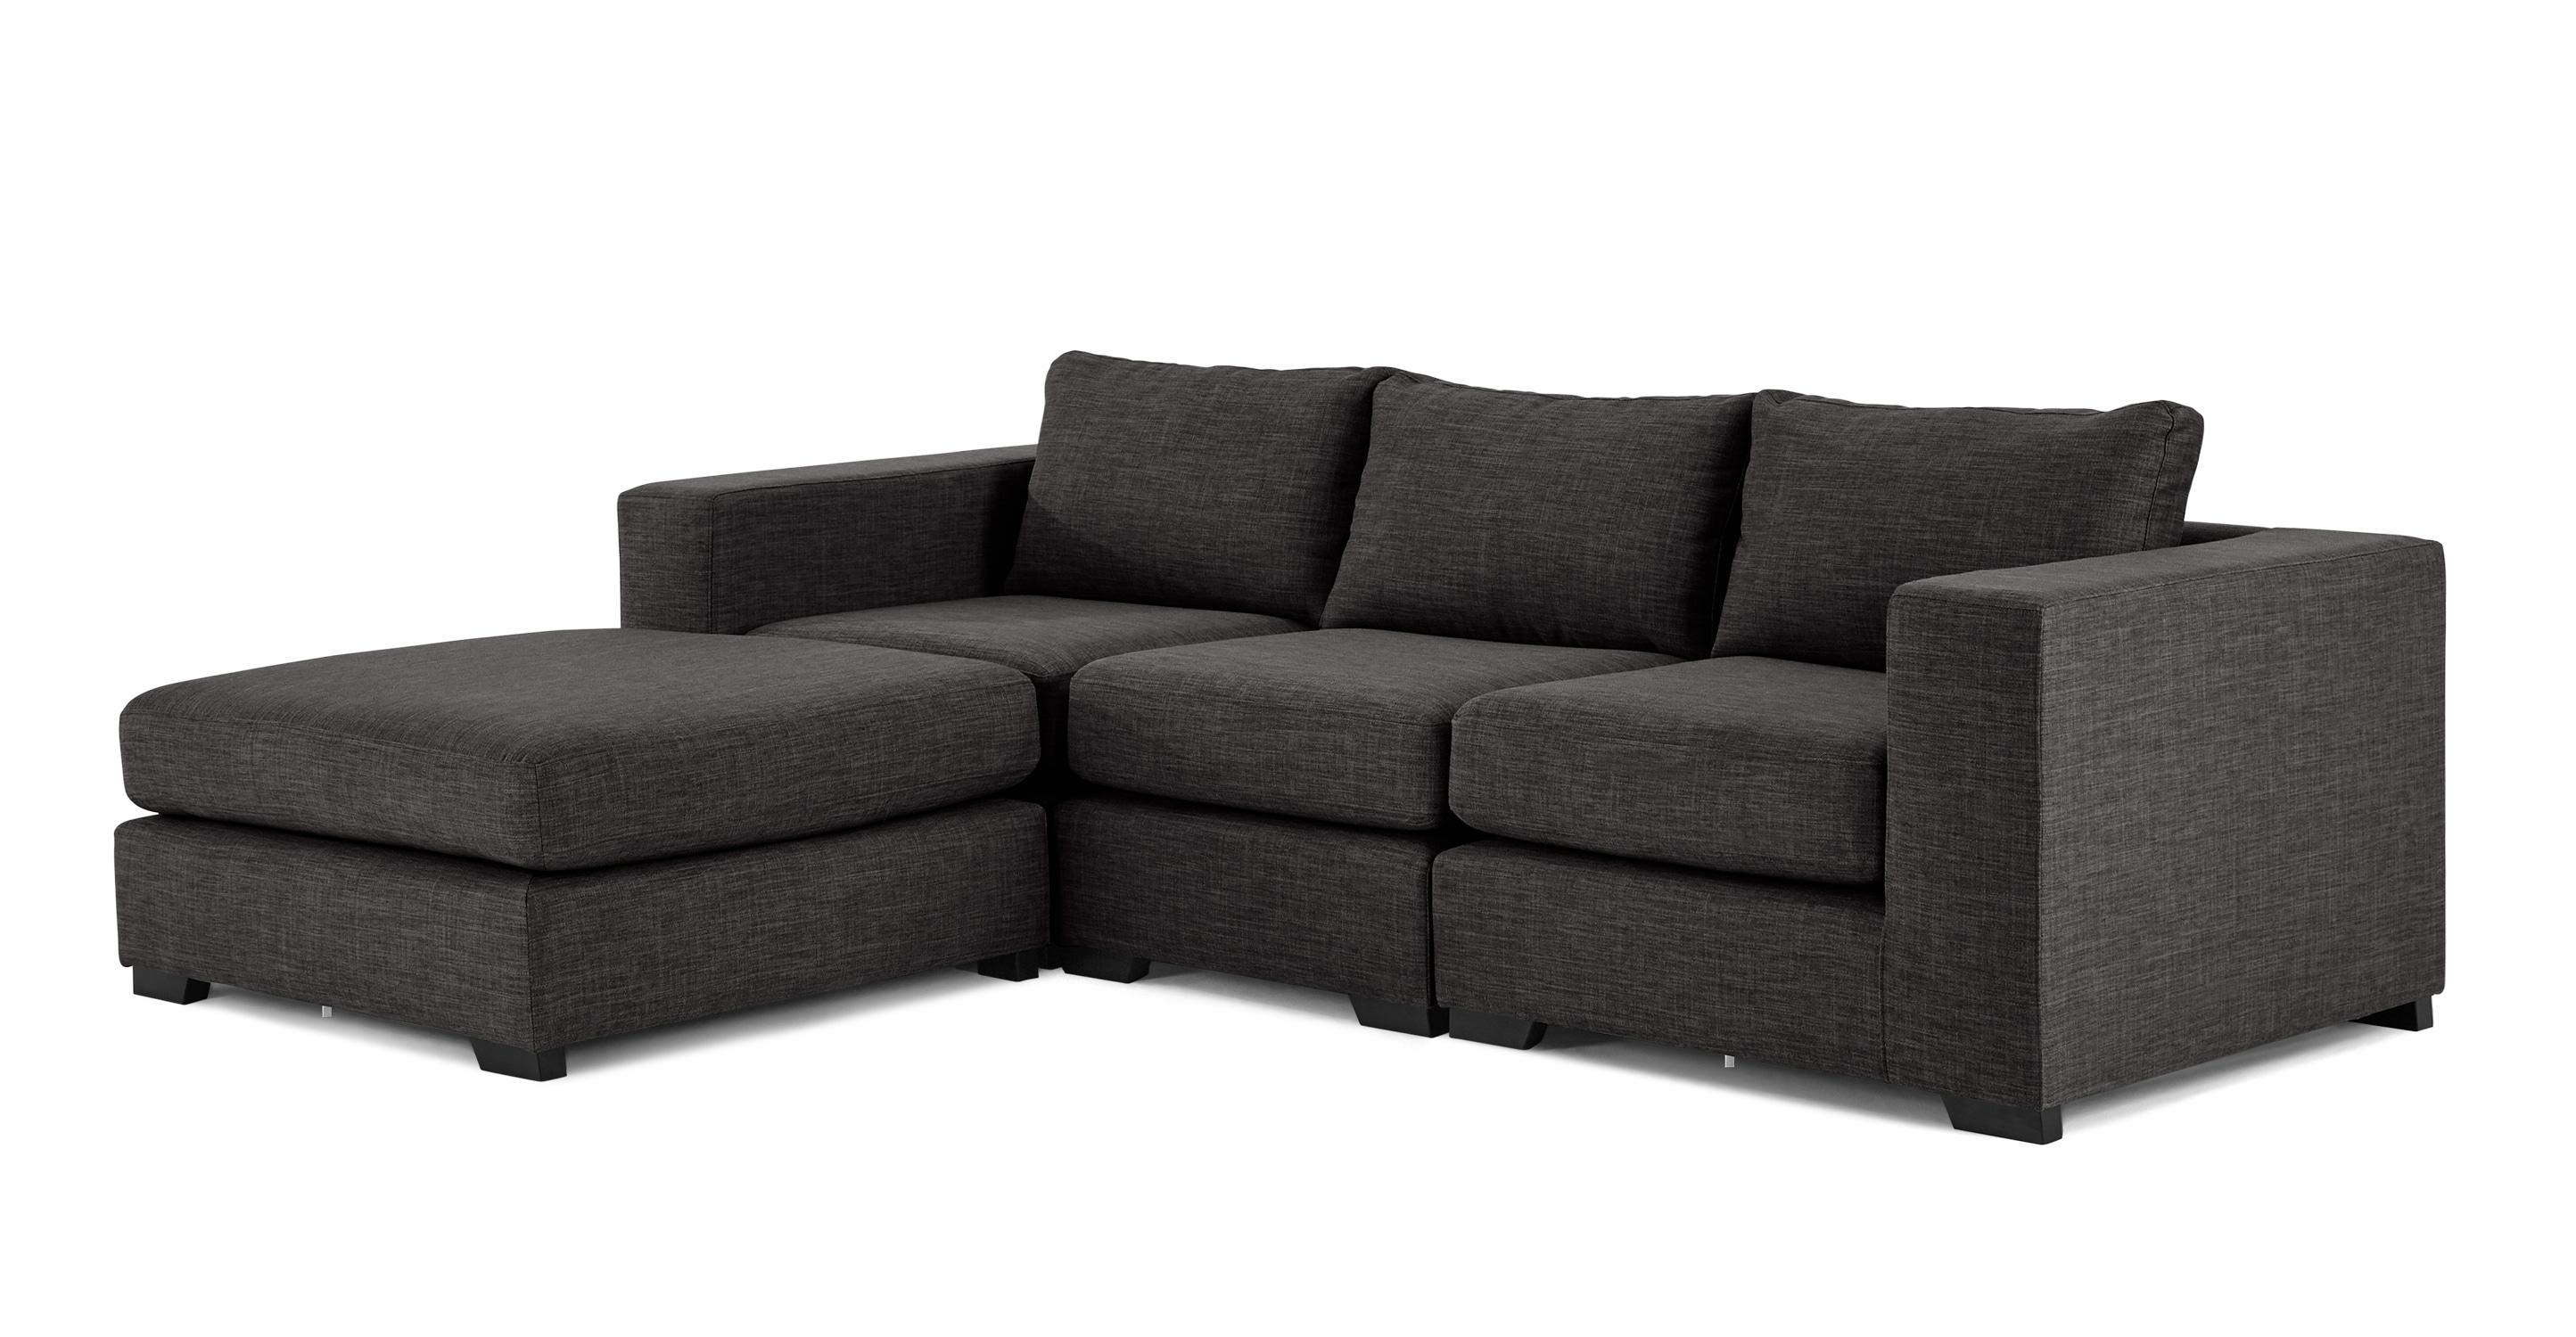 Mortimer 4 Seat Modular Corner Sofa, Seal Grey | Made In Modular Corner Sofas (View 15 of 20)